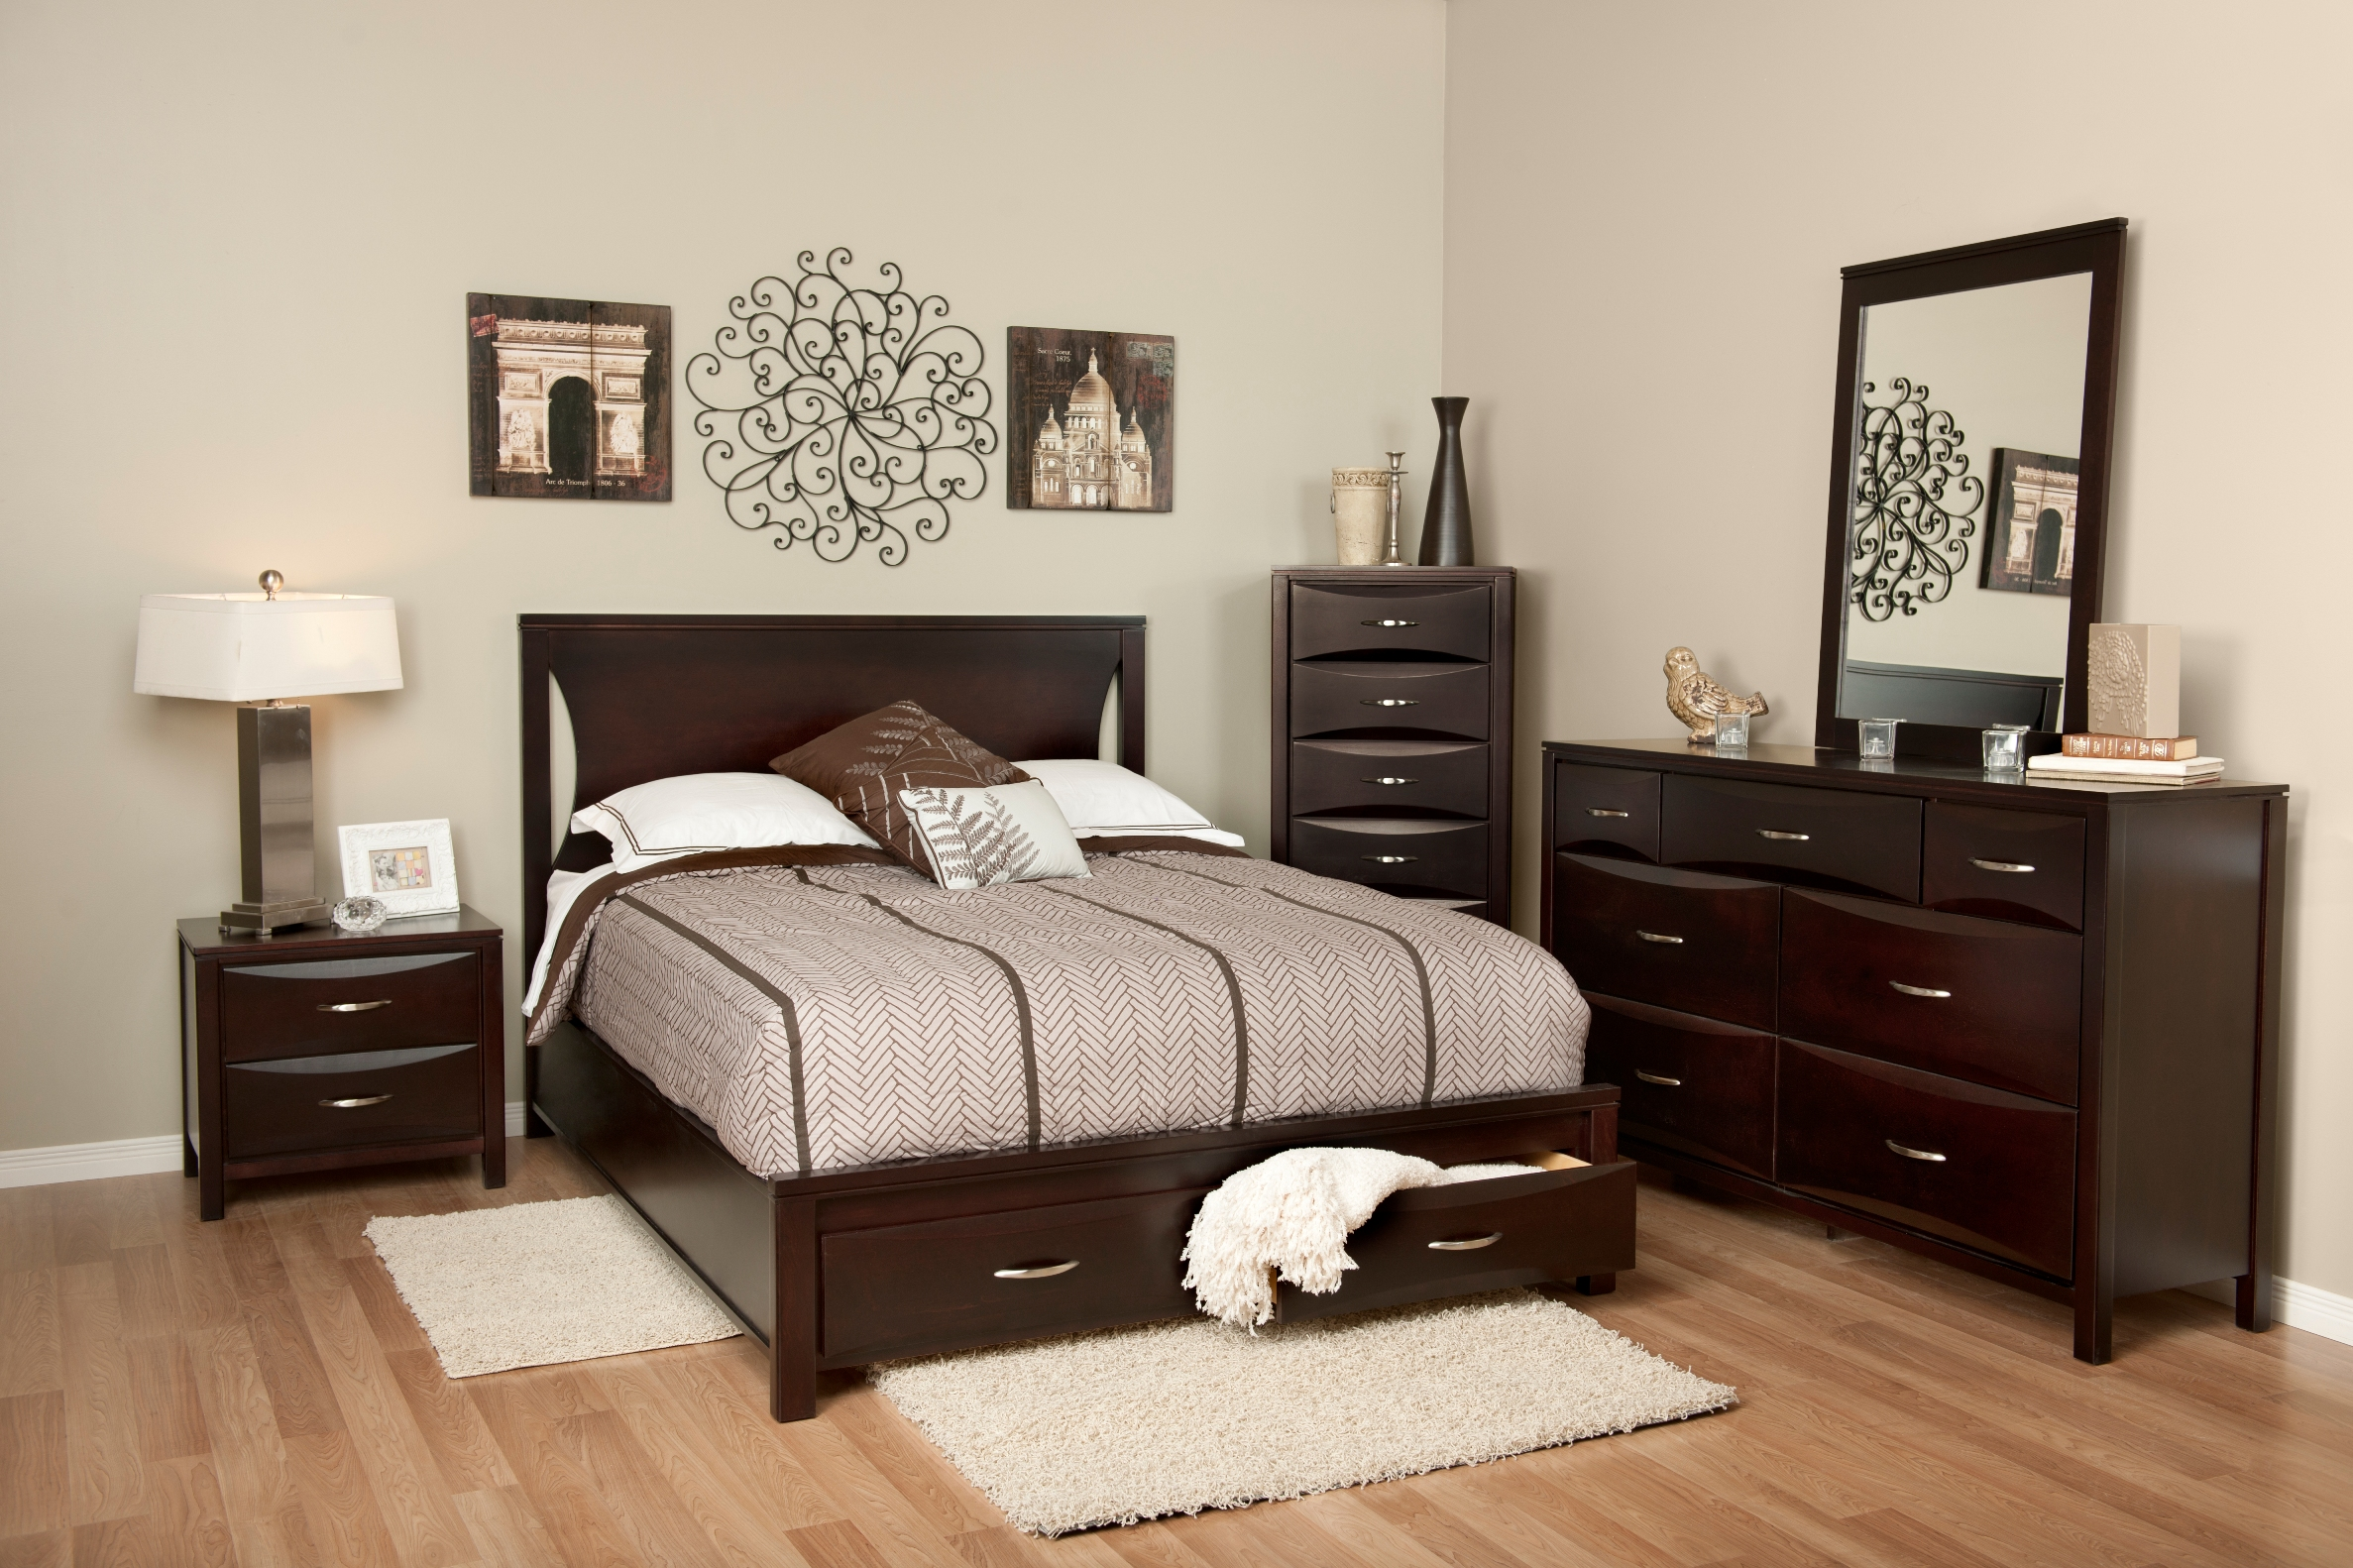 Pleasing Bedroom Furniture Sets Store Masterbedroom Inc Home Interior And Landscaping Eliaenasavecom